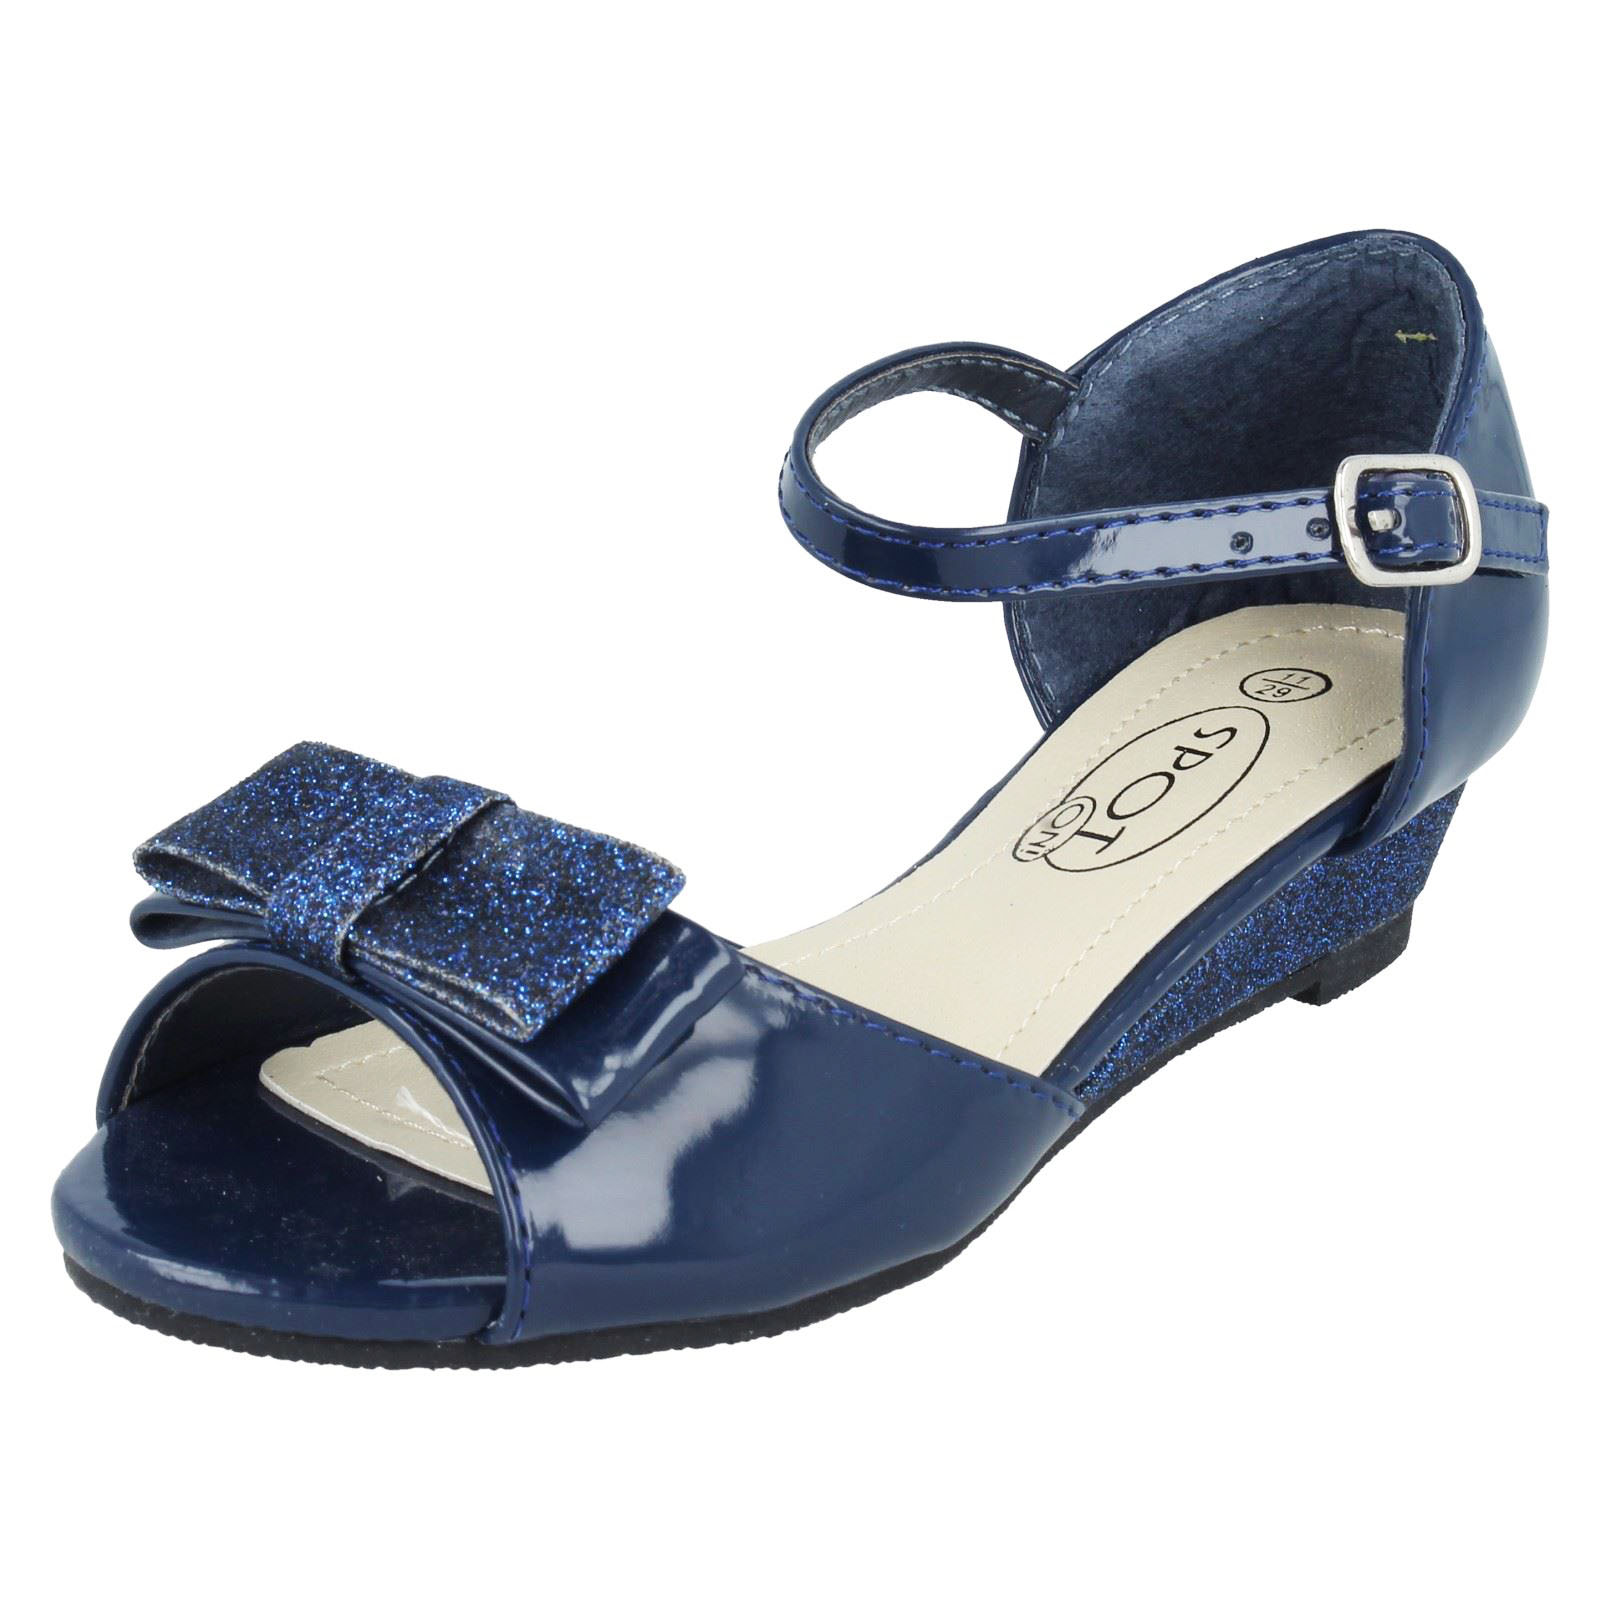 GIRLS KIDS NAVY PEEP-TOE PARTY SHOES